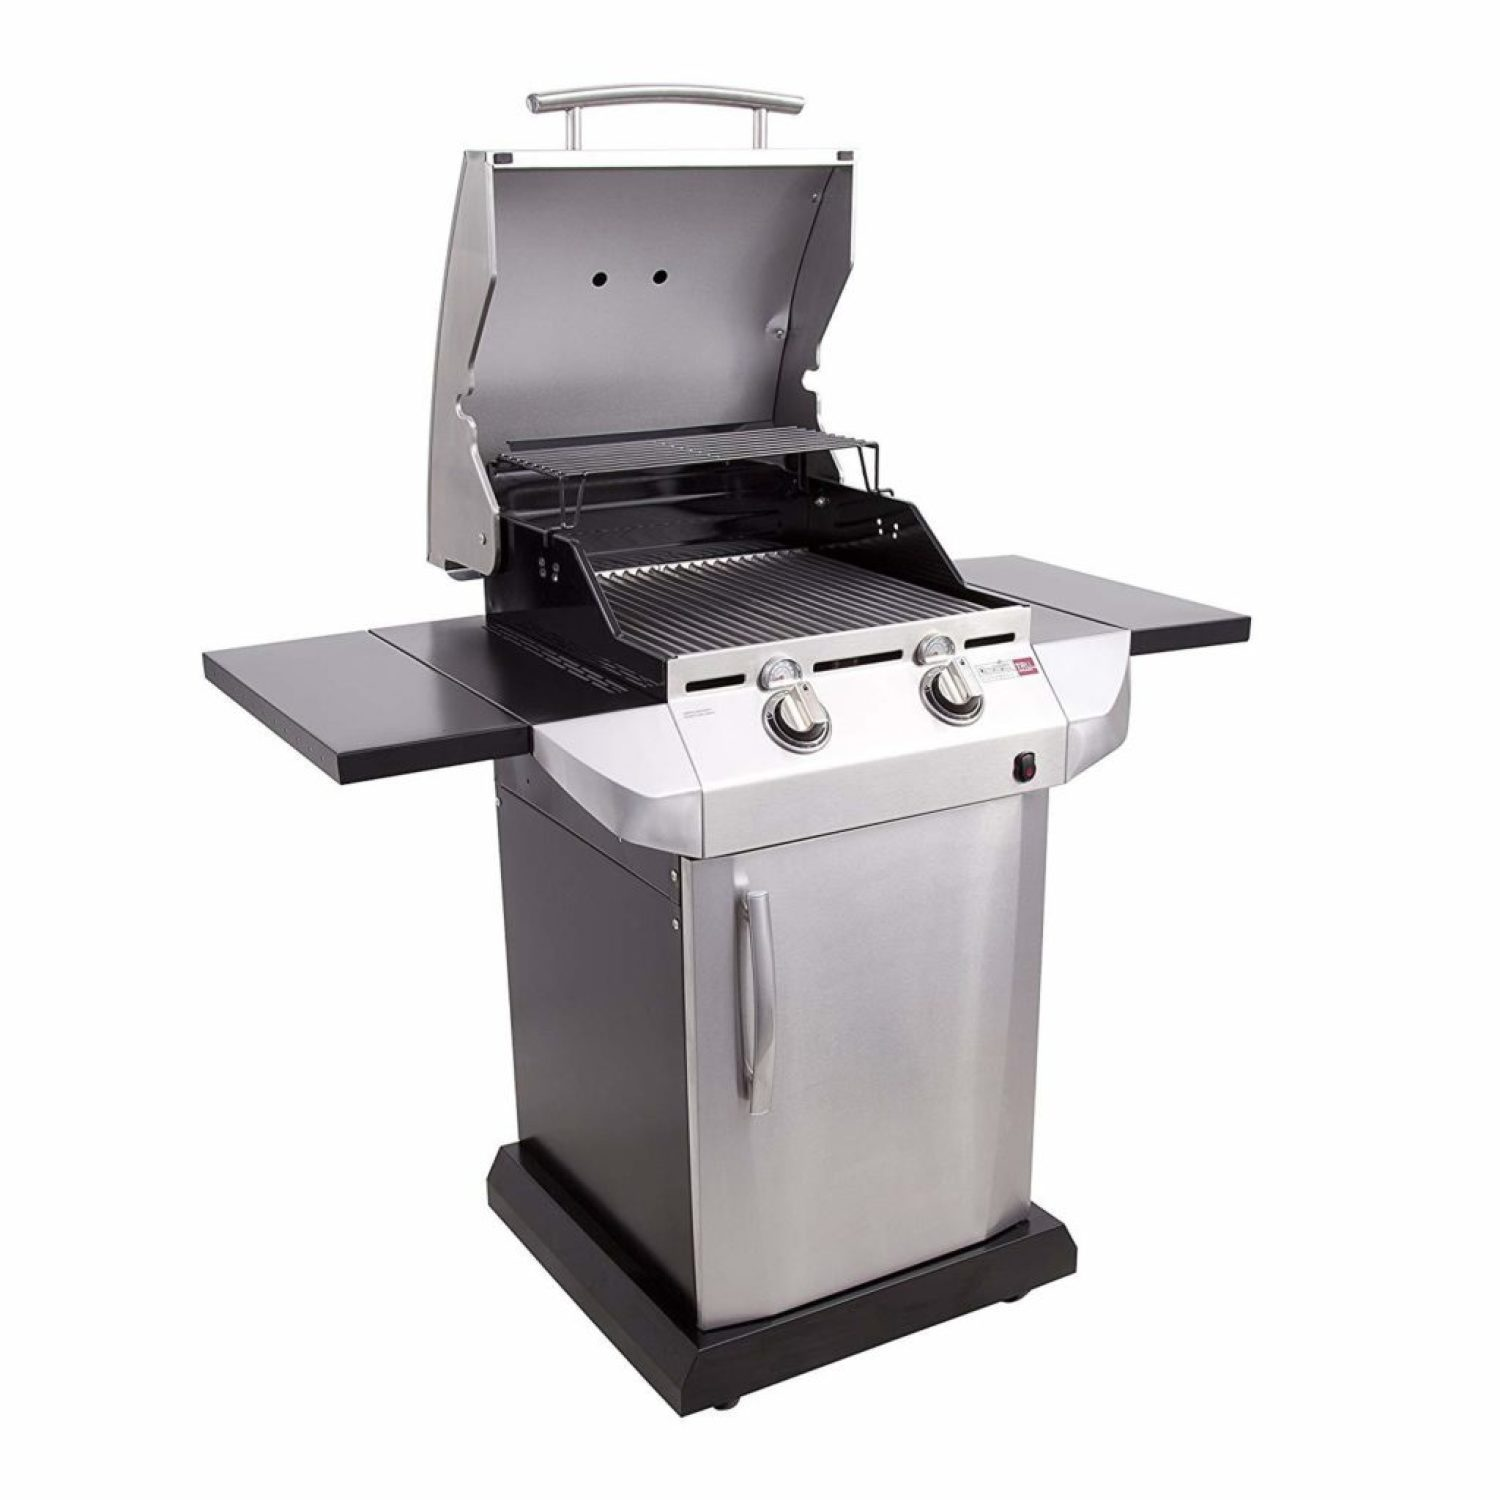 Char-Broil Performance TRU-Infrared 340 2-Burner Gas Grill